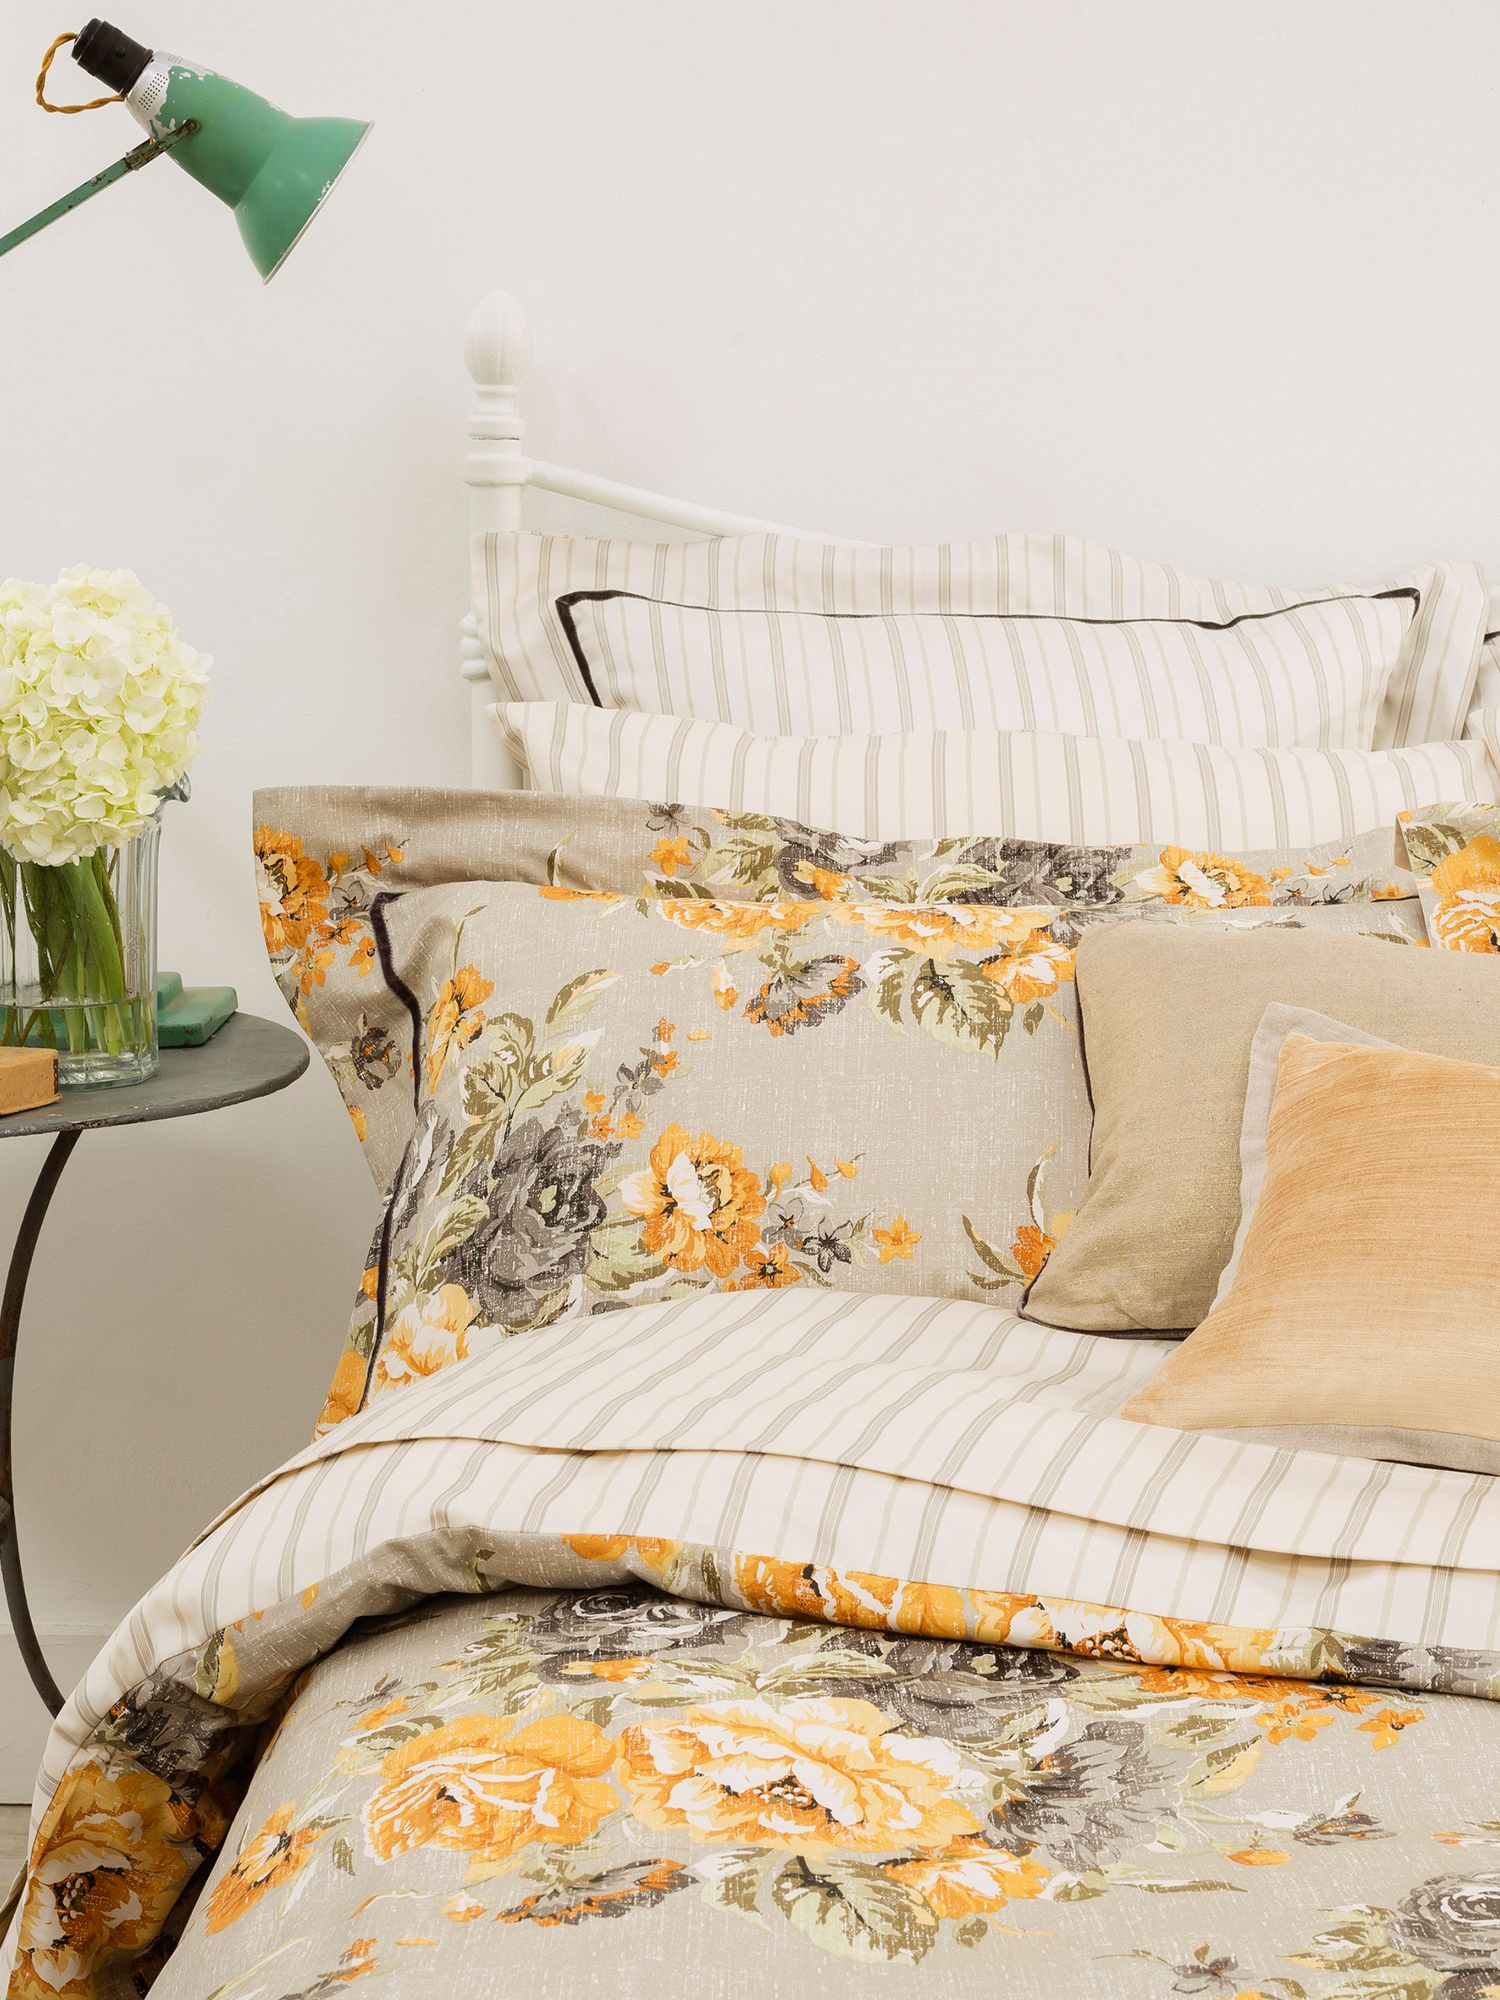 Ochre bloom bed linen